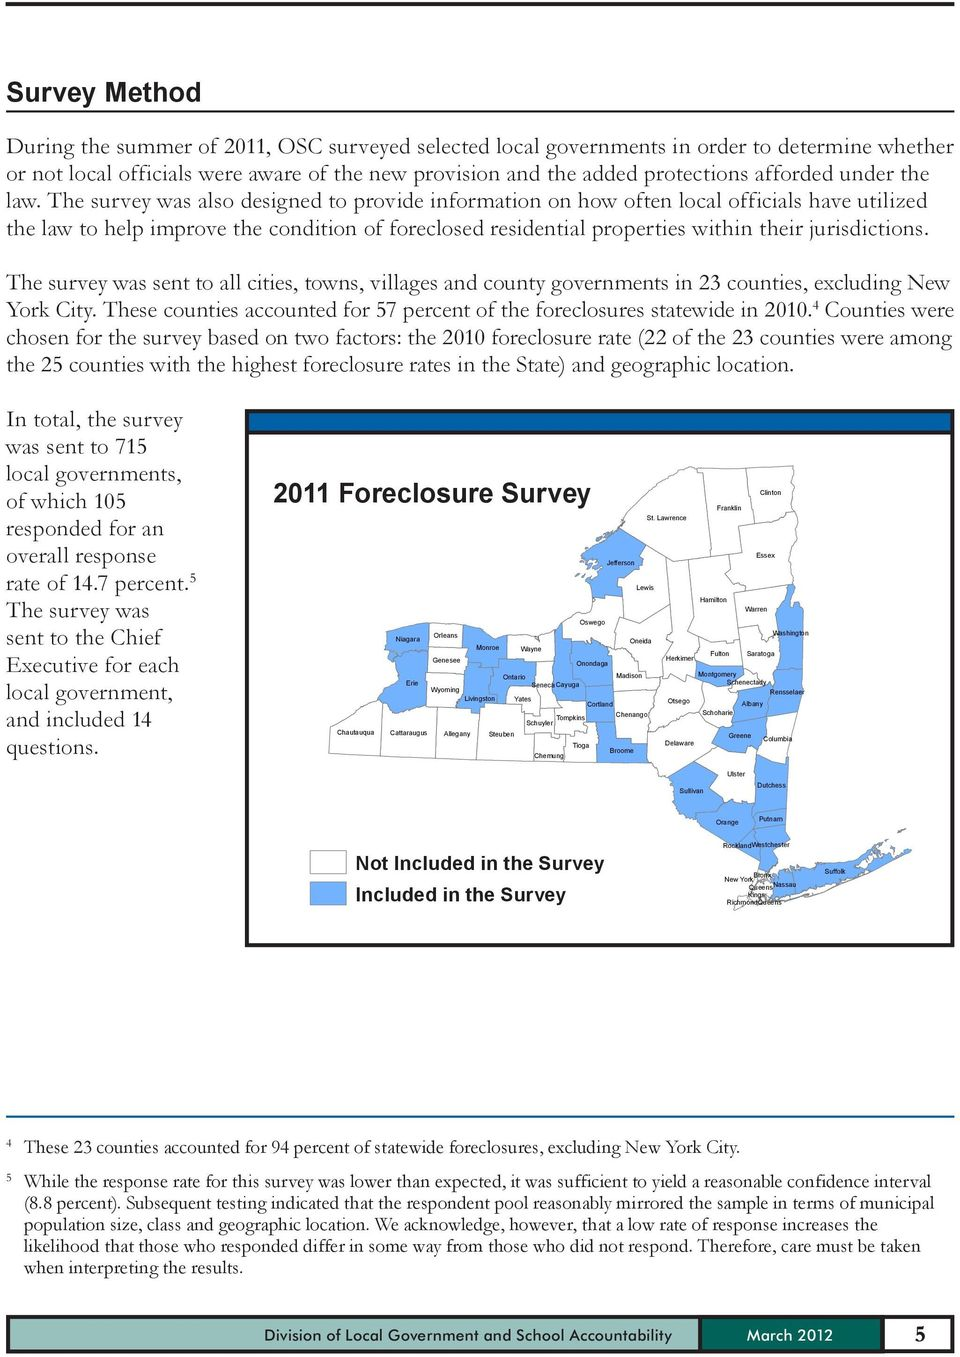 The survey was also designed to provide information on how often local officials have utilized the law to help improve the condition of foreclosed residential properties within their jurisdictions.